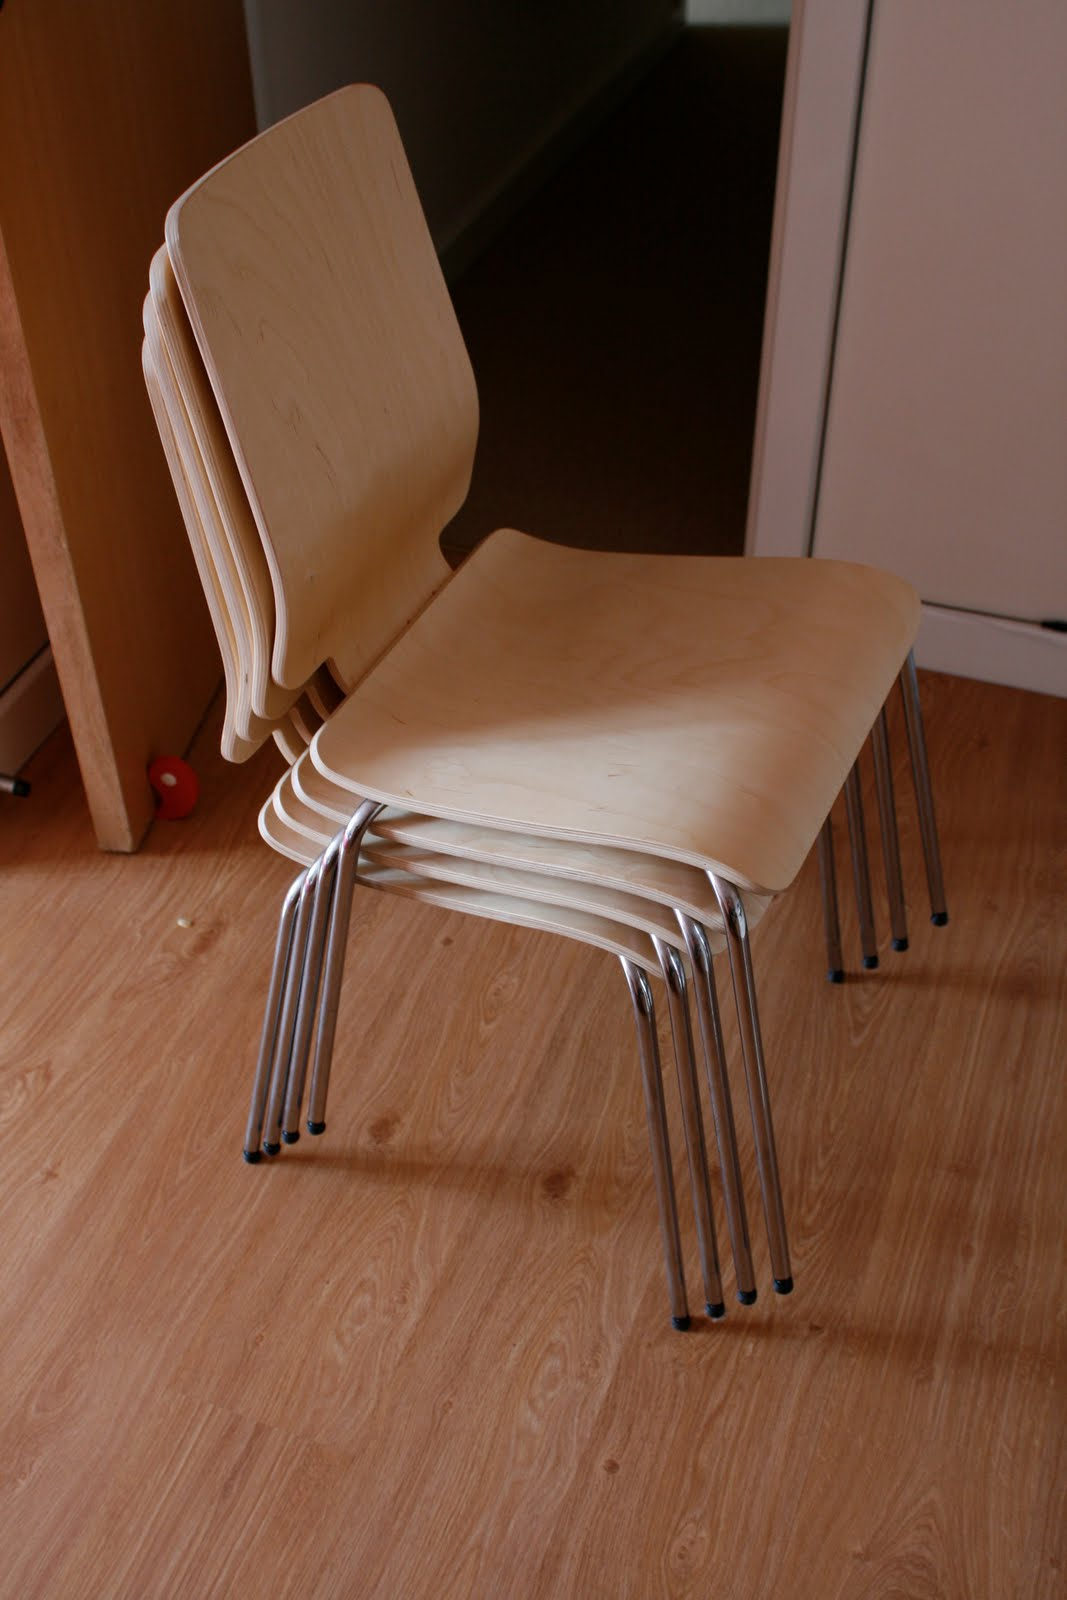 gilbert chair ikea canvas sling for sale everything must go